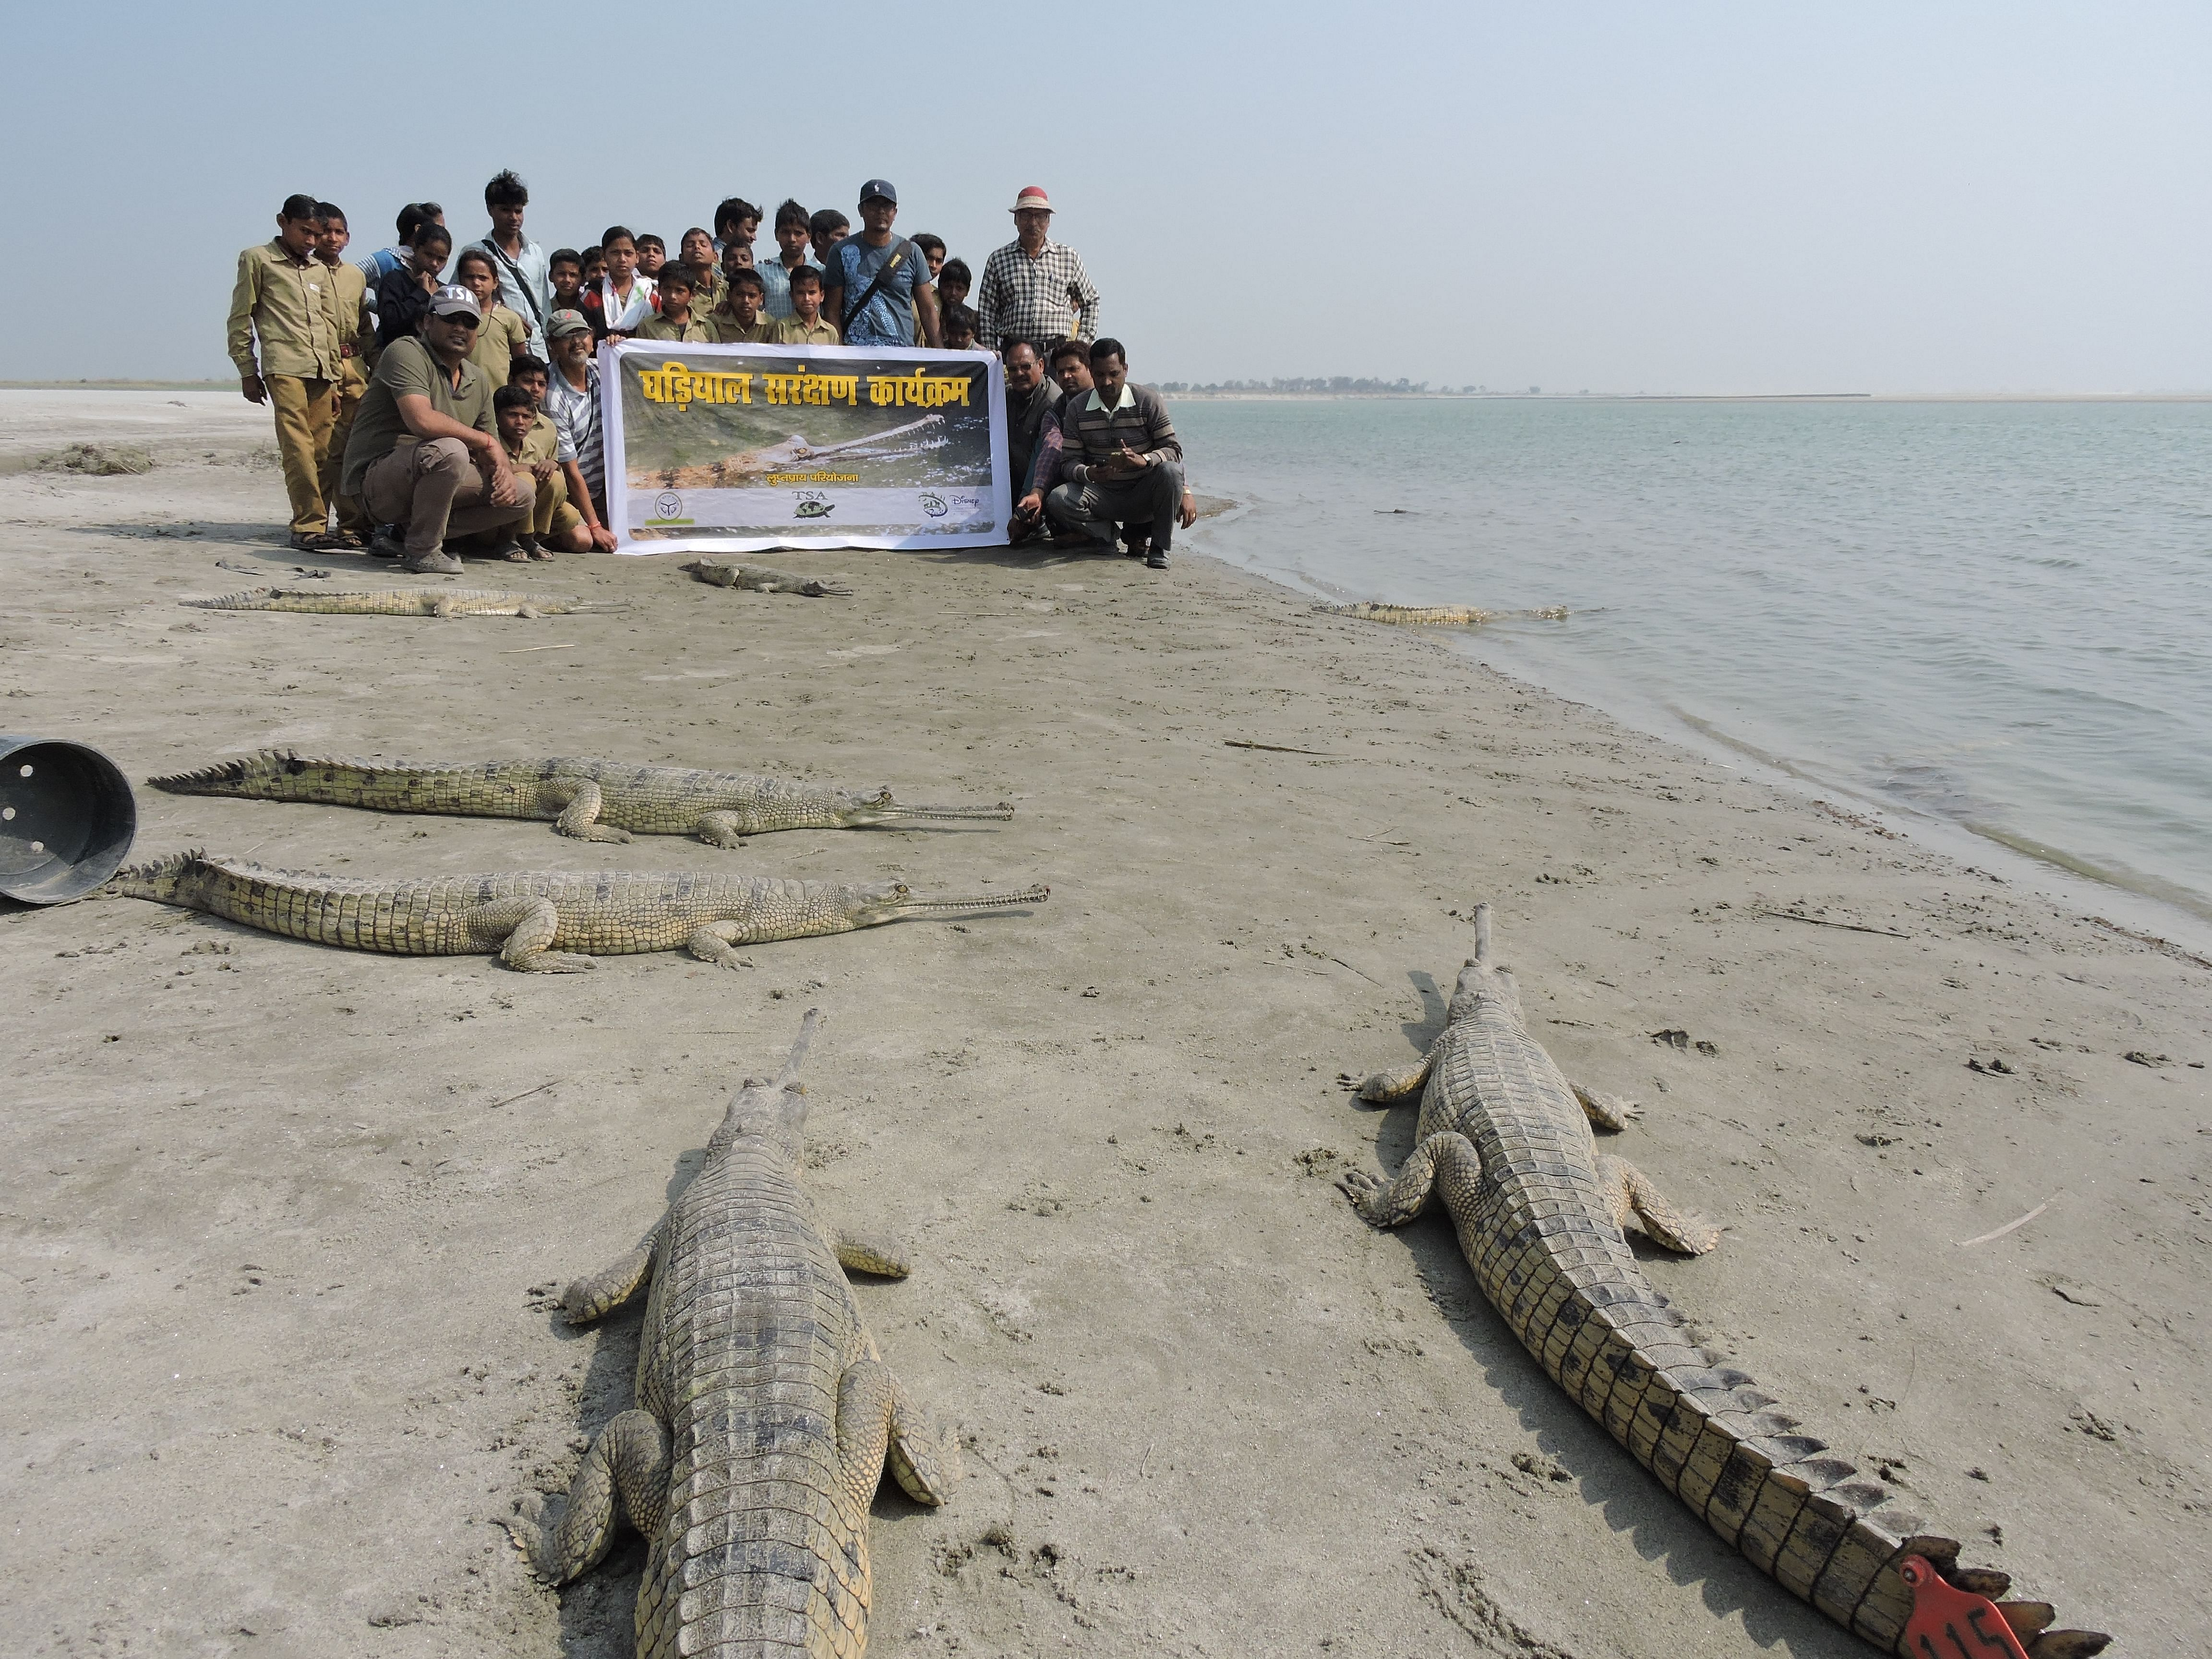 Gharial juveniles tagged and being released in the winter months